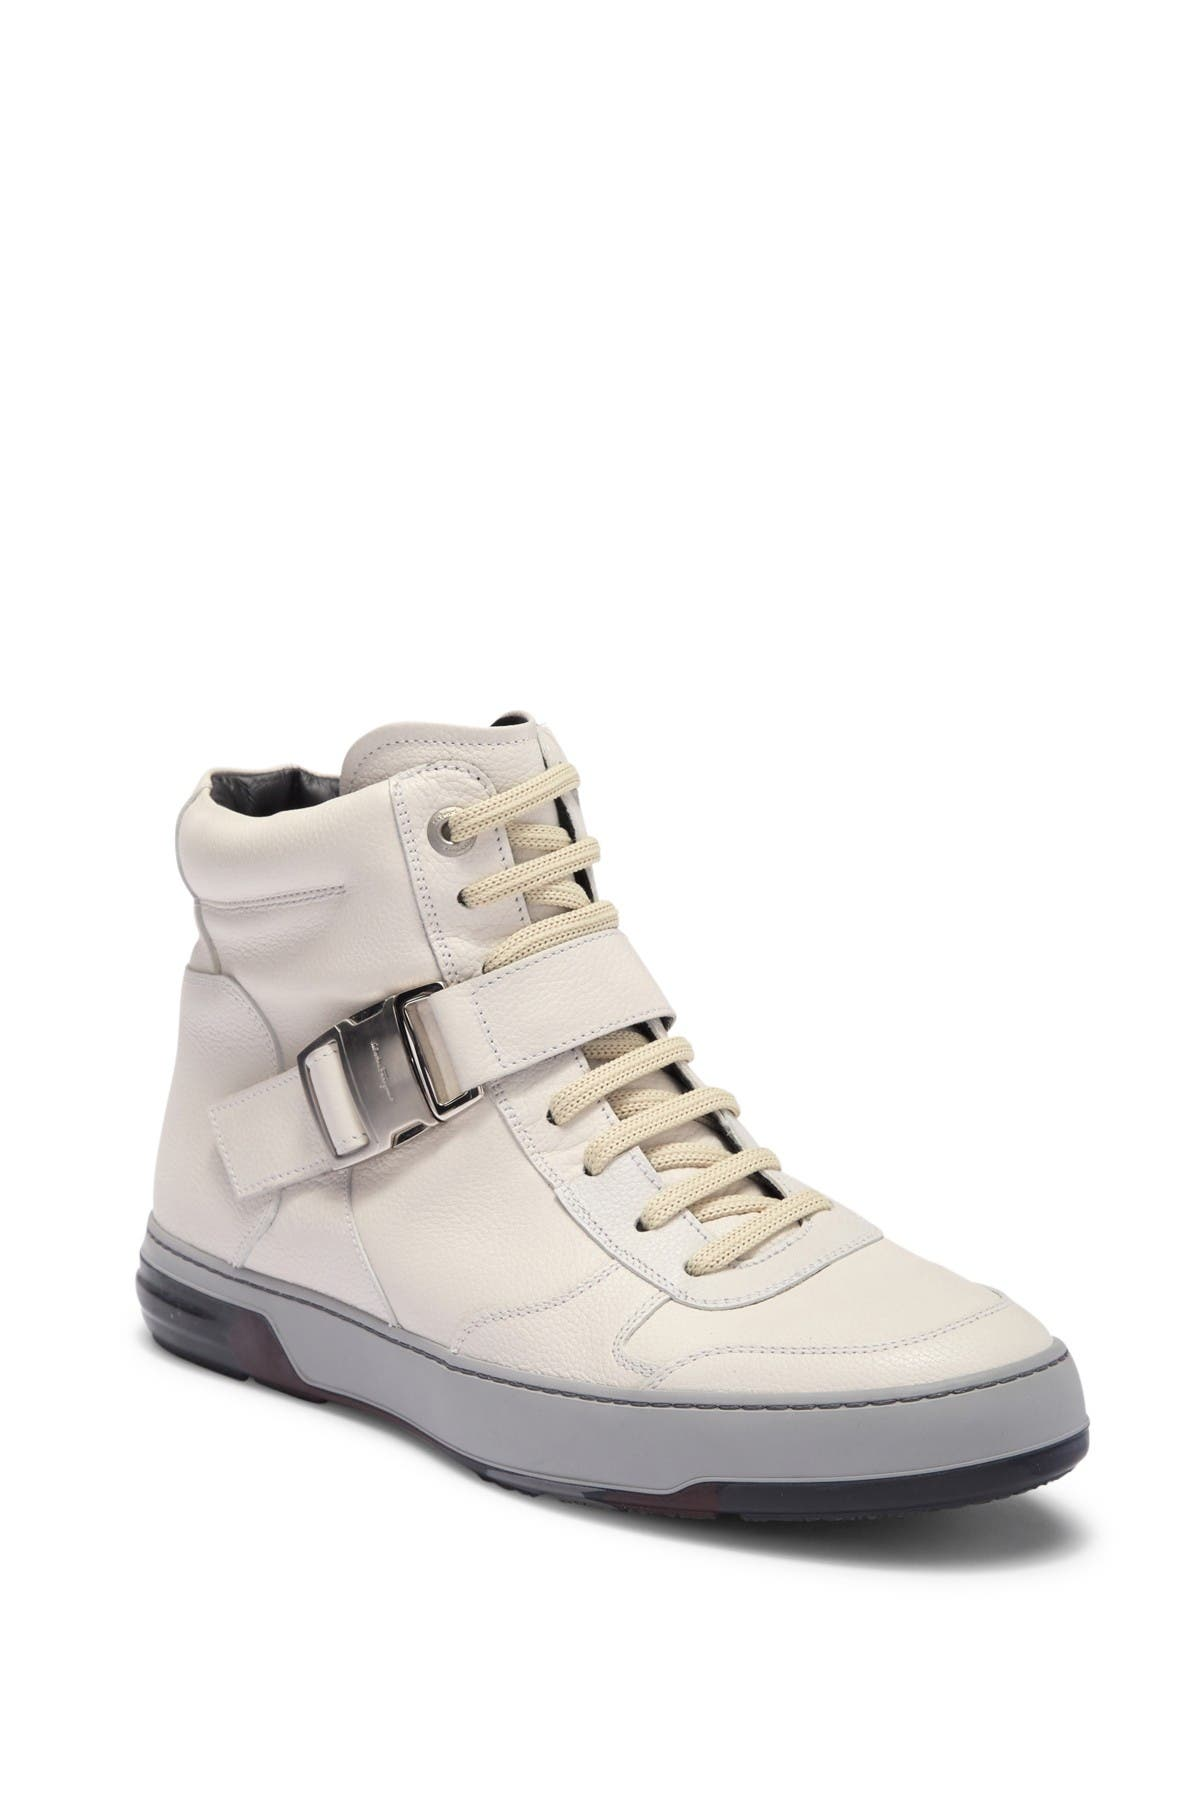 Mulberry High-Top Leather Sneaker